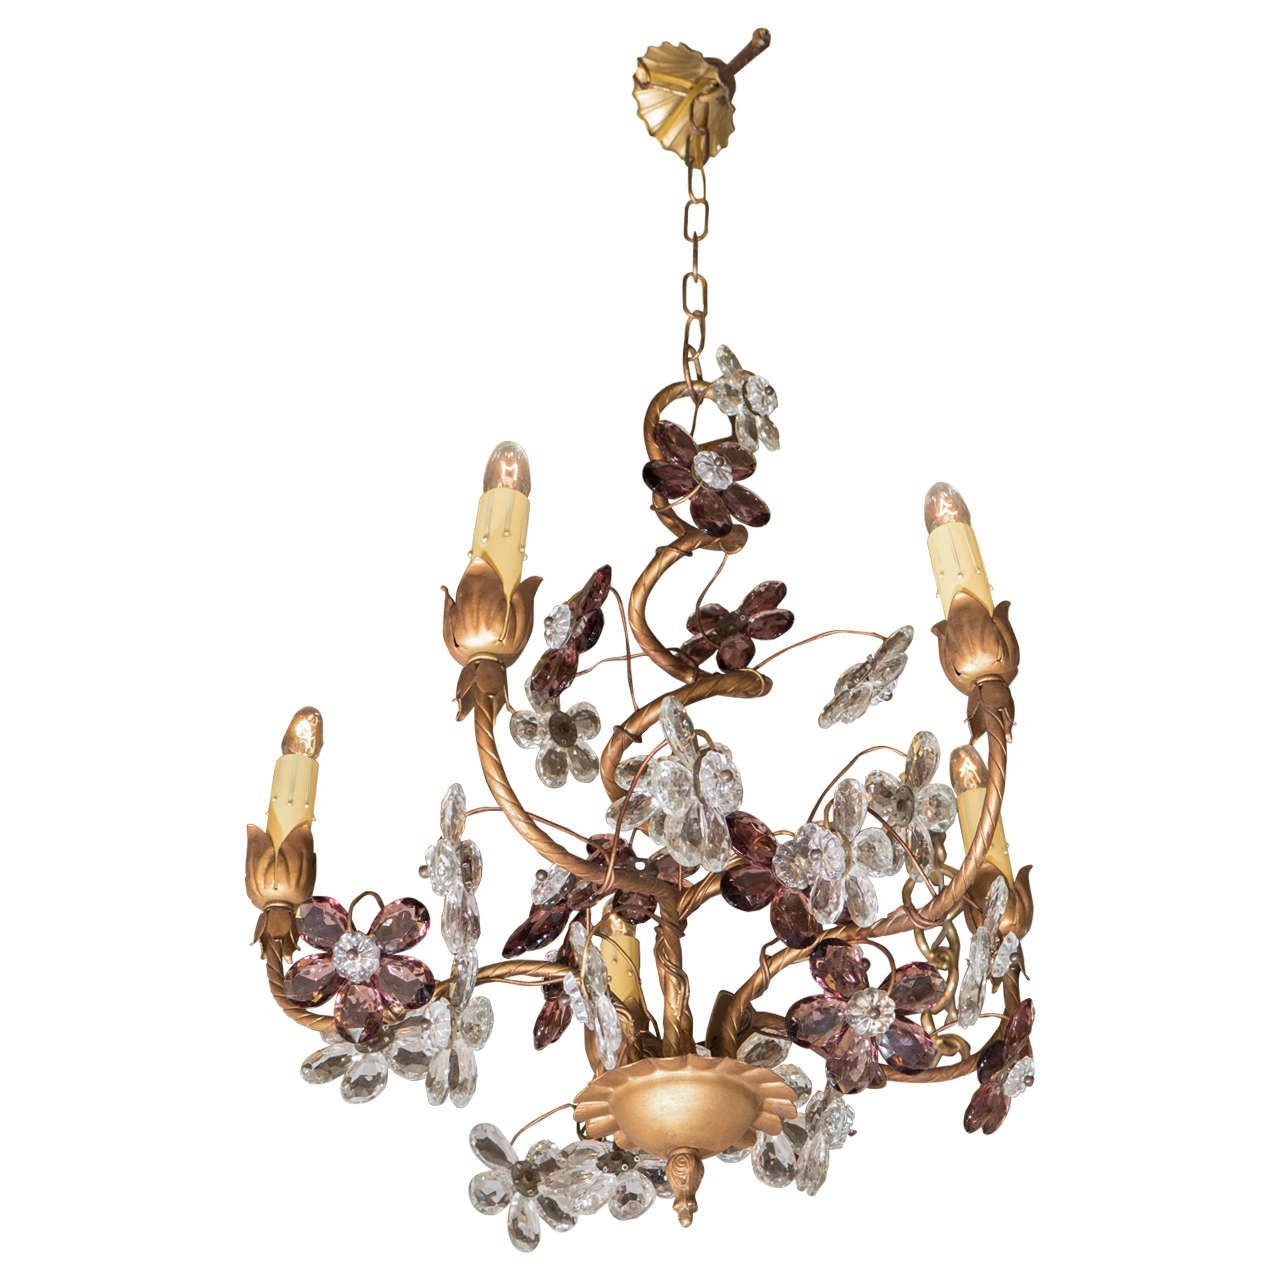 Italian 1950s Crystal Flower Gilt Chandelier From A Unique Collection Of Antique And Modern Chandeliers Pendants At